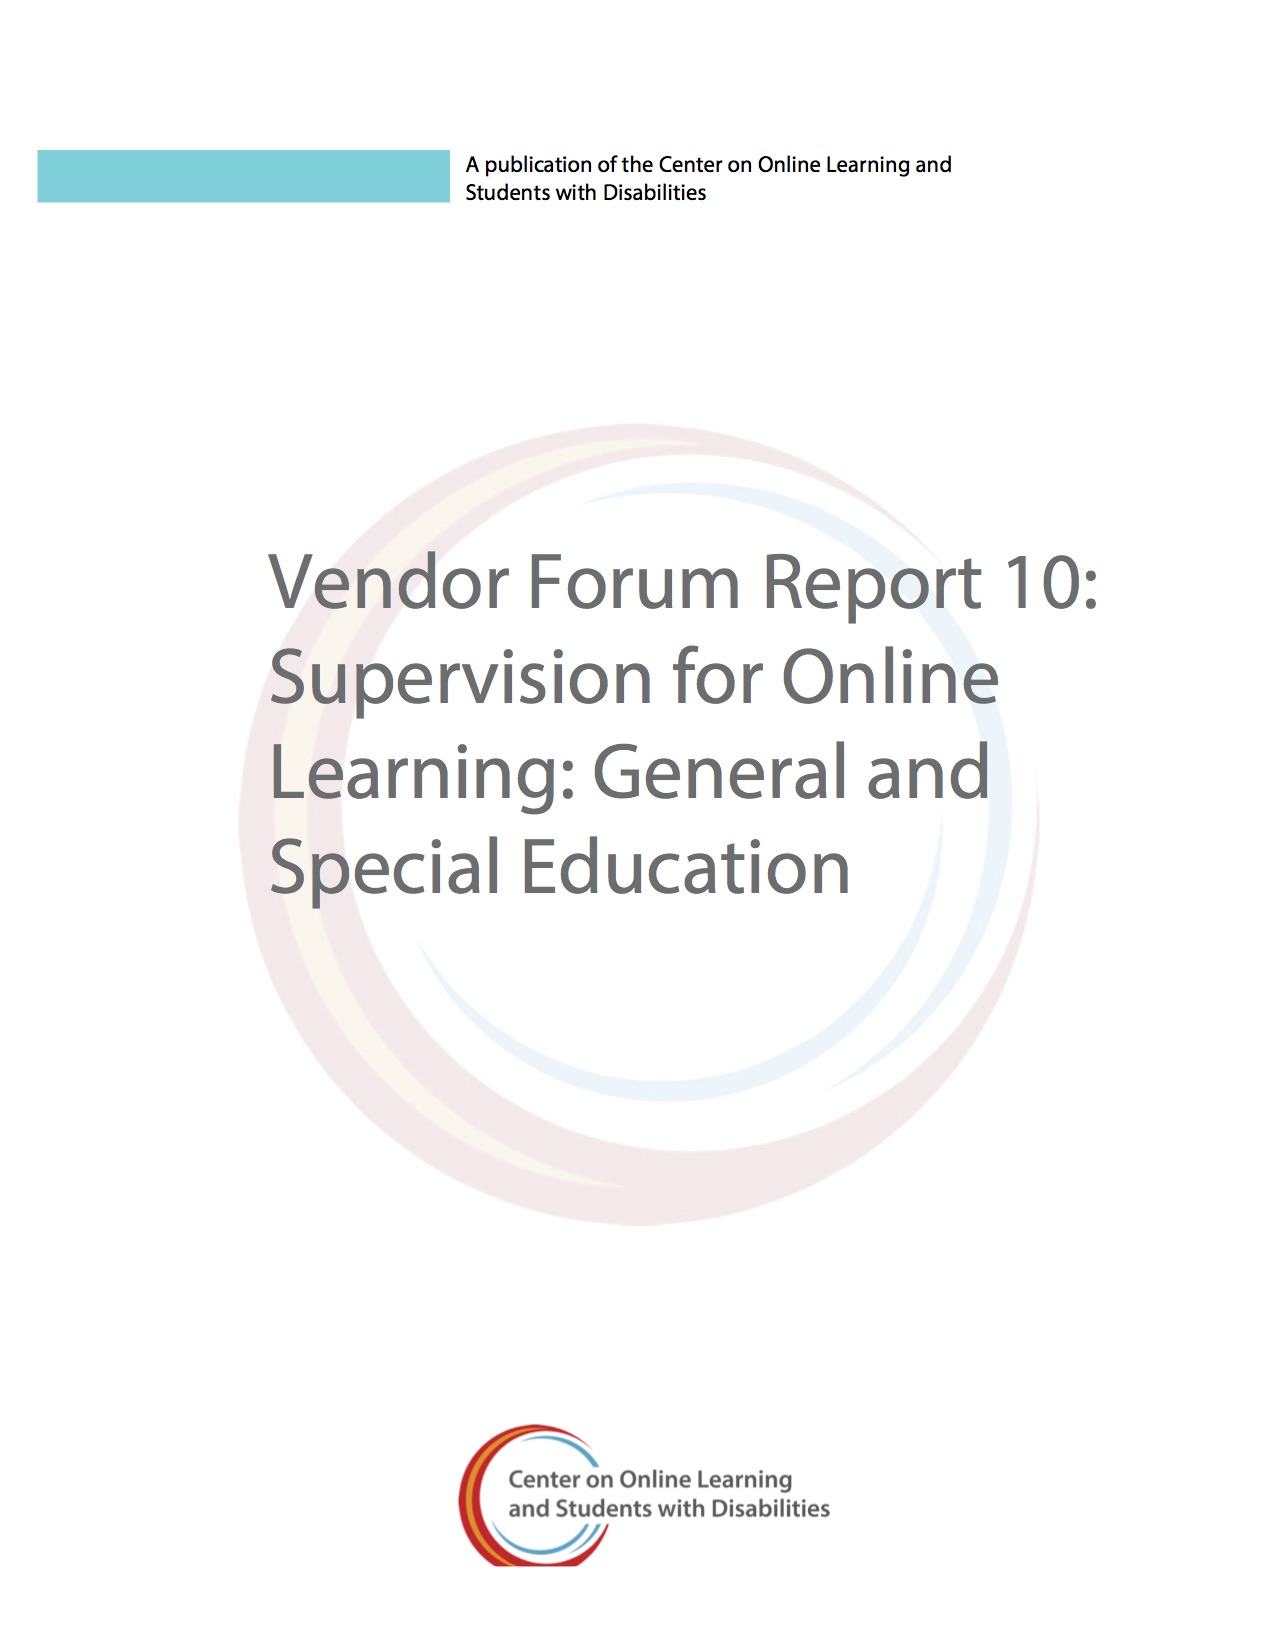 Vendor Forum Report 10: Supervision For Online Learning: General And Special Education